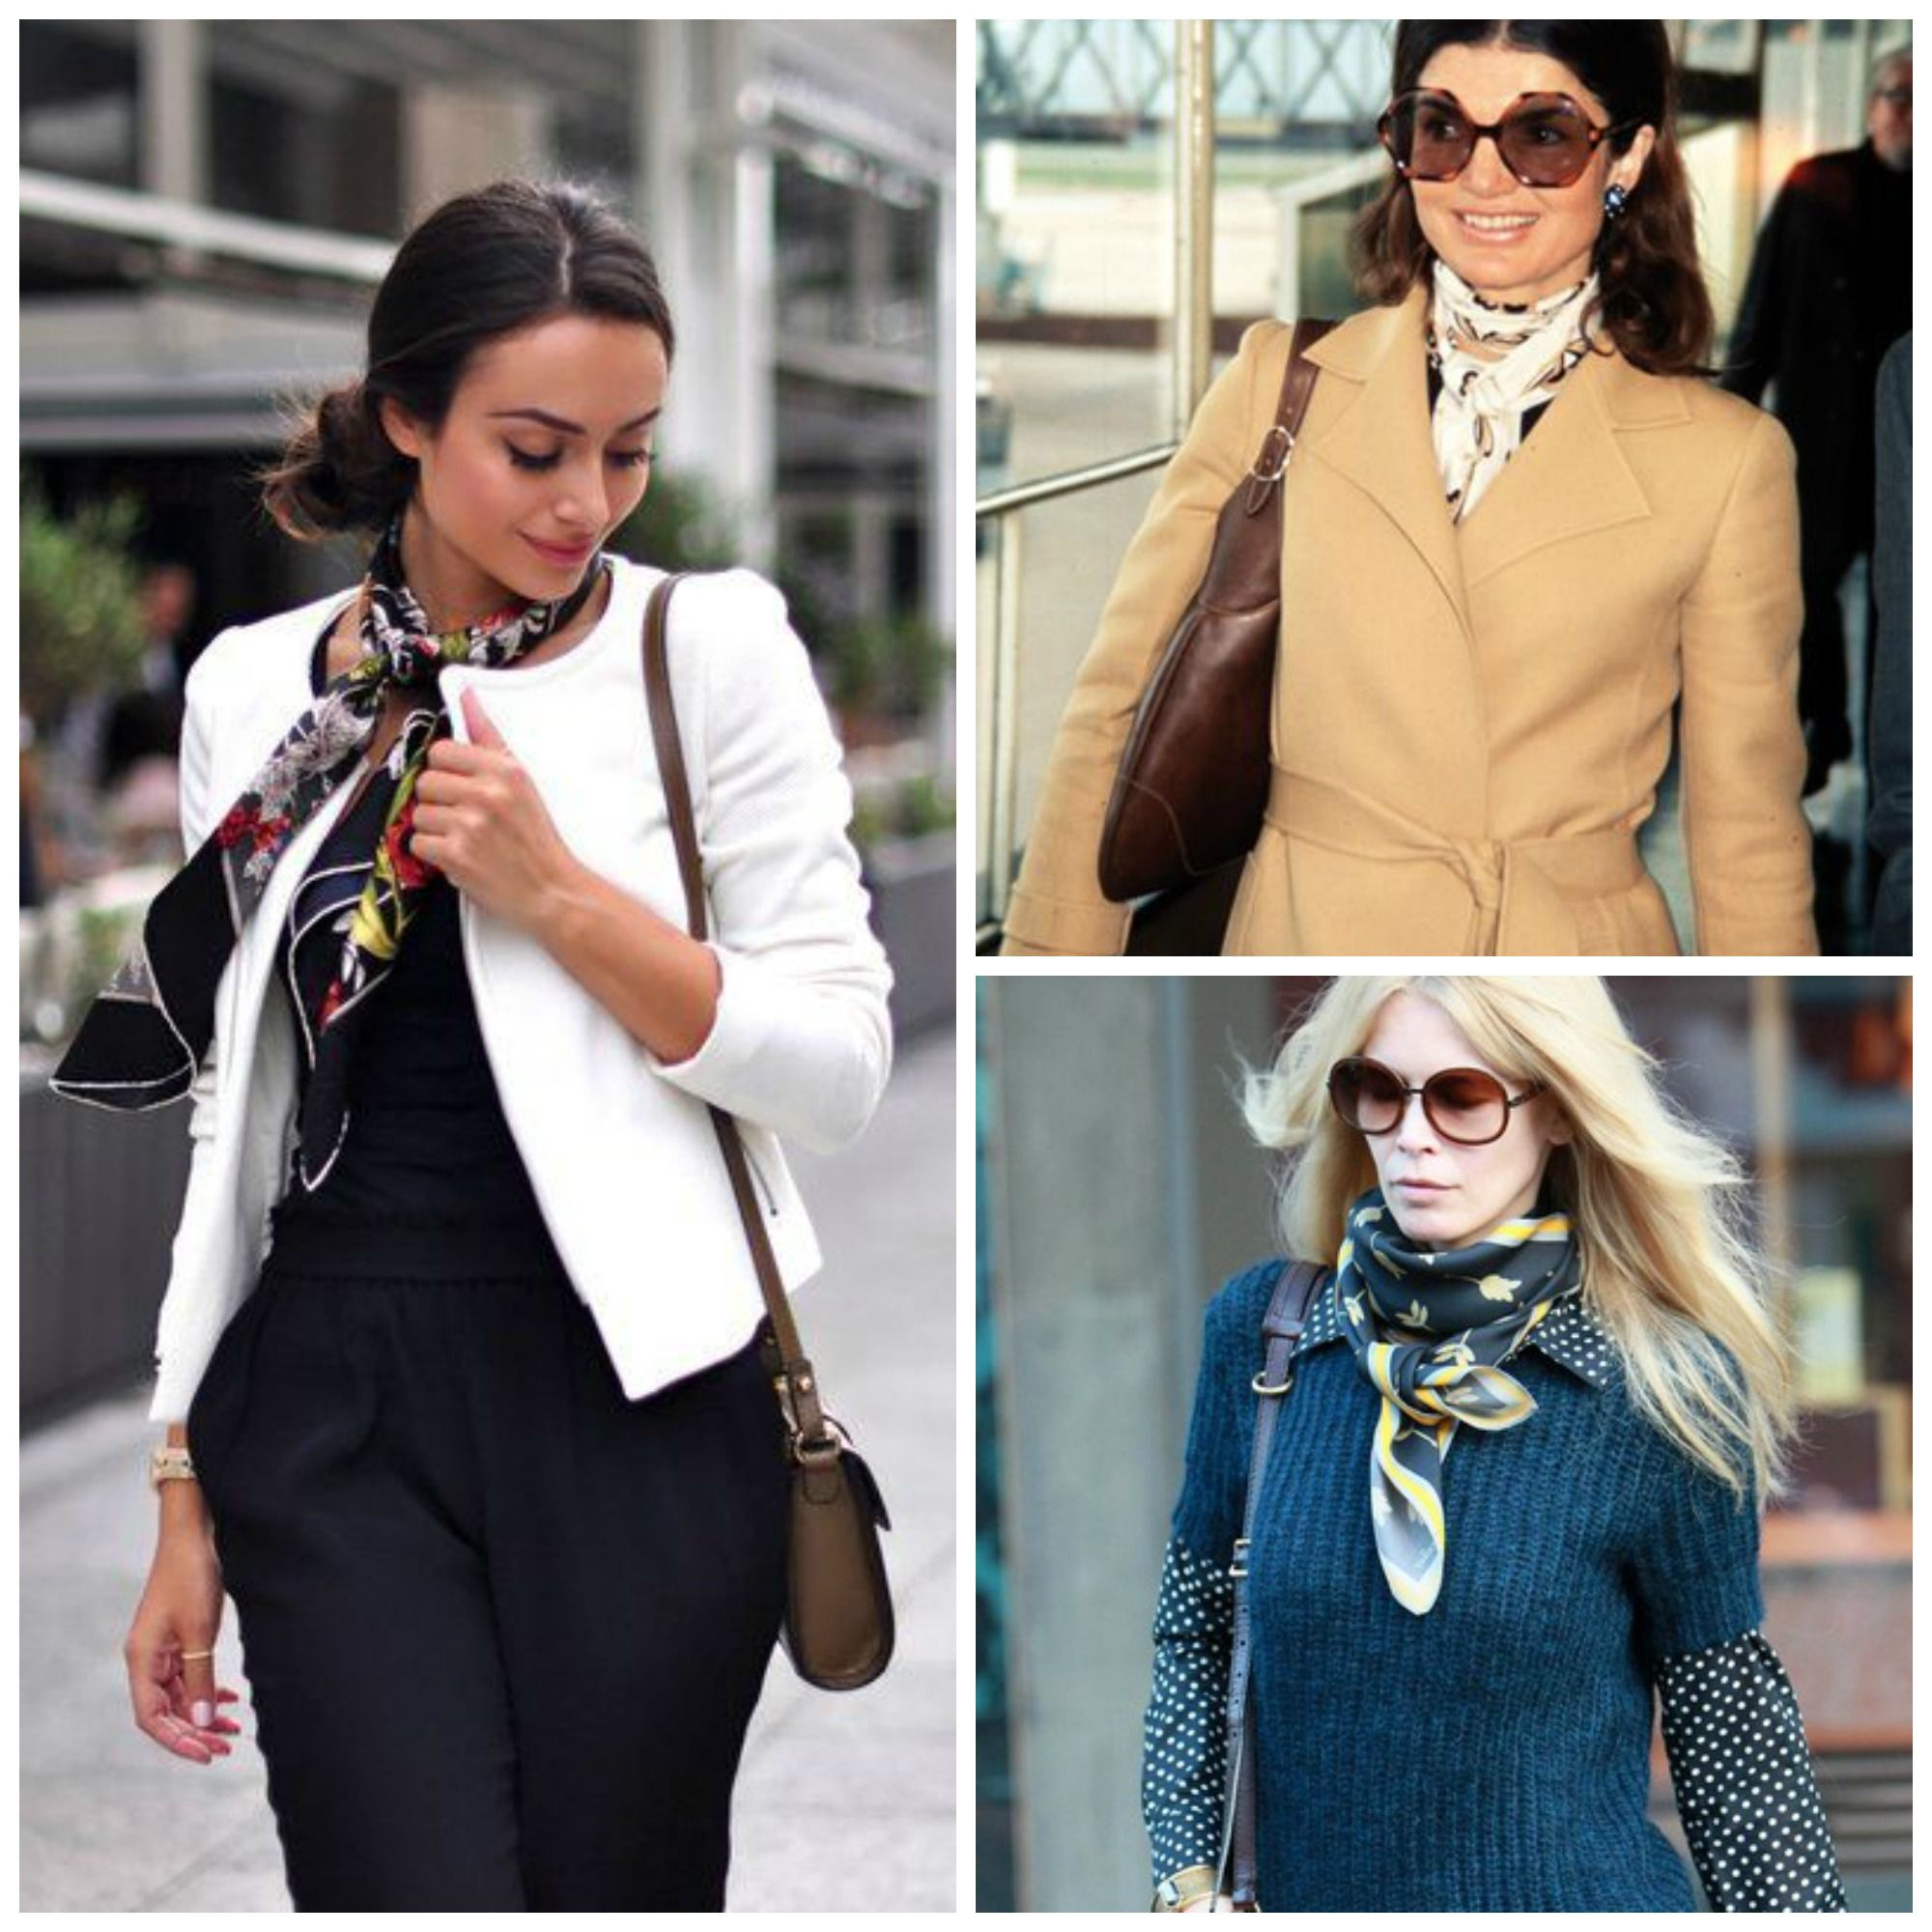 Evening Shawl Outfit Ideas